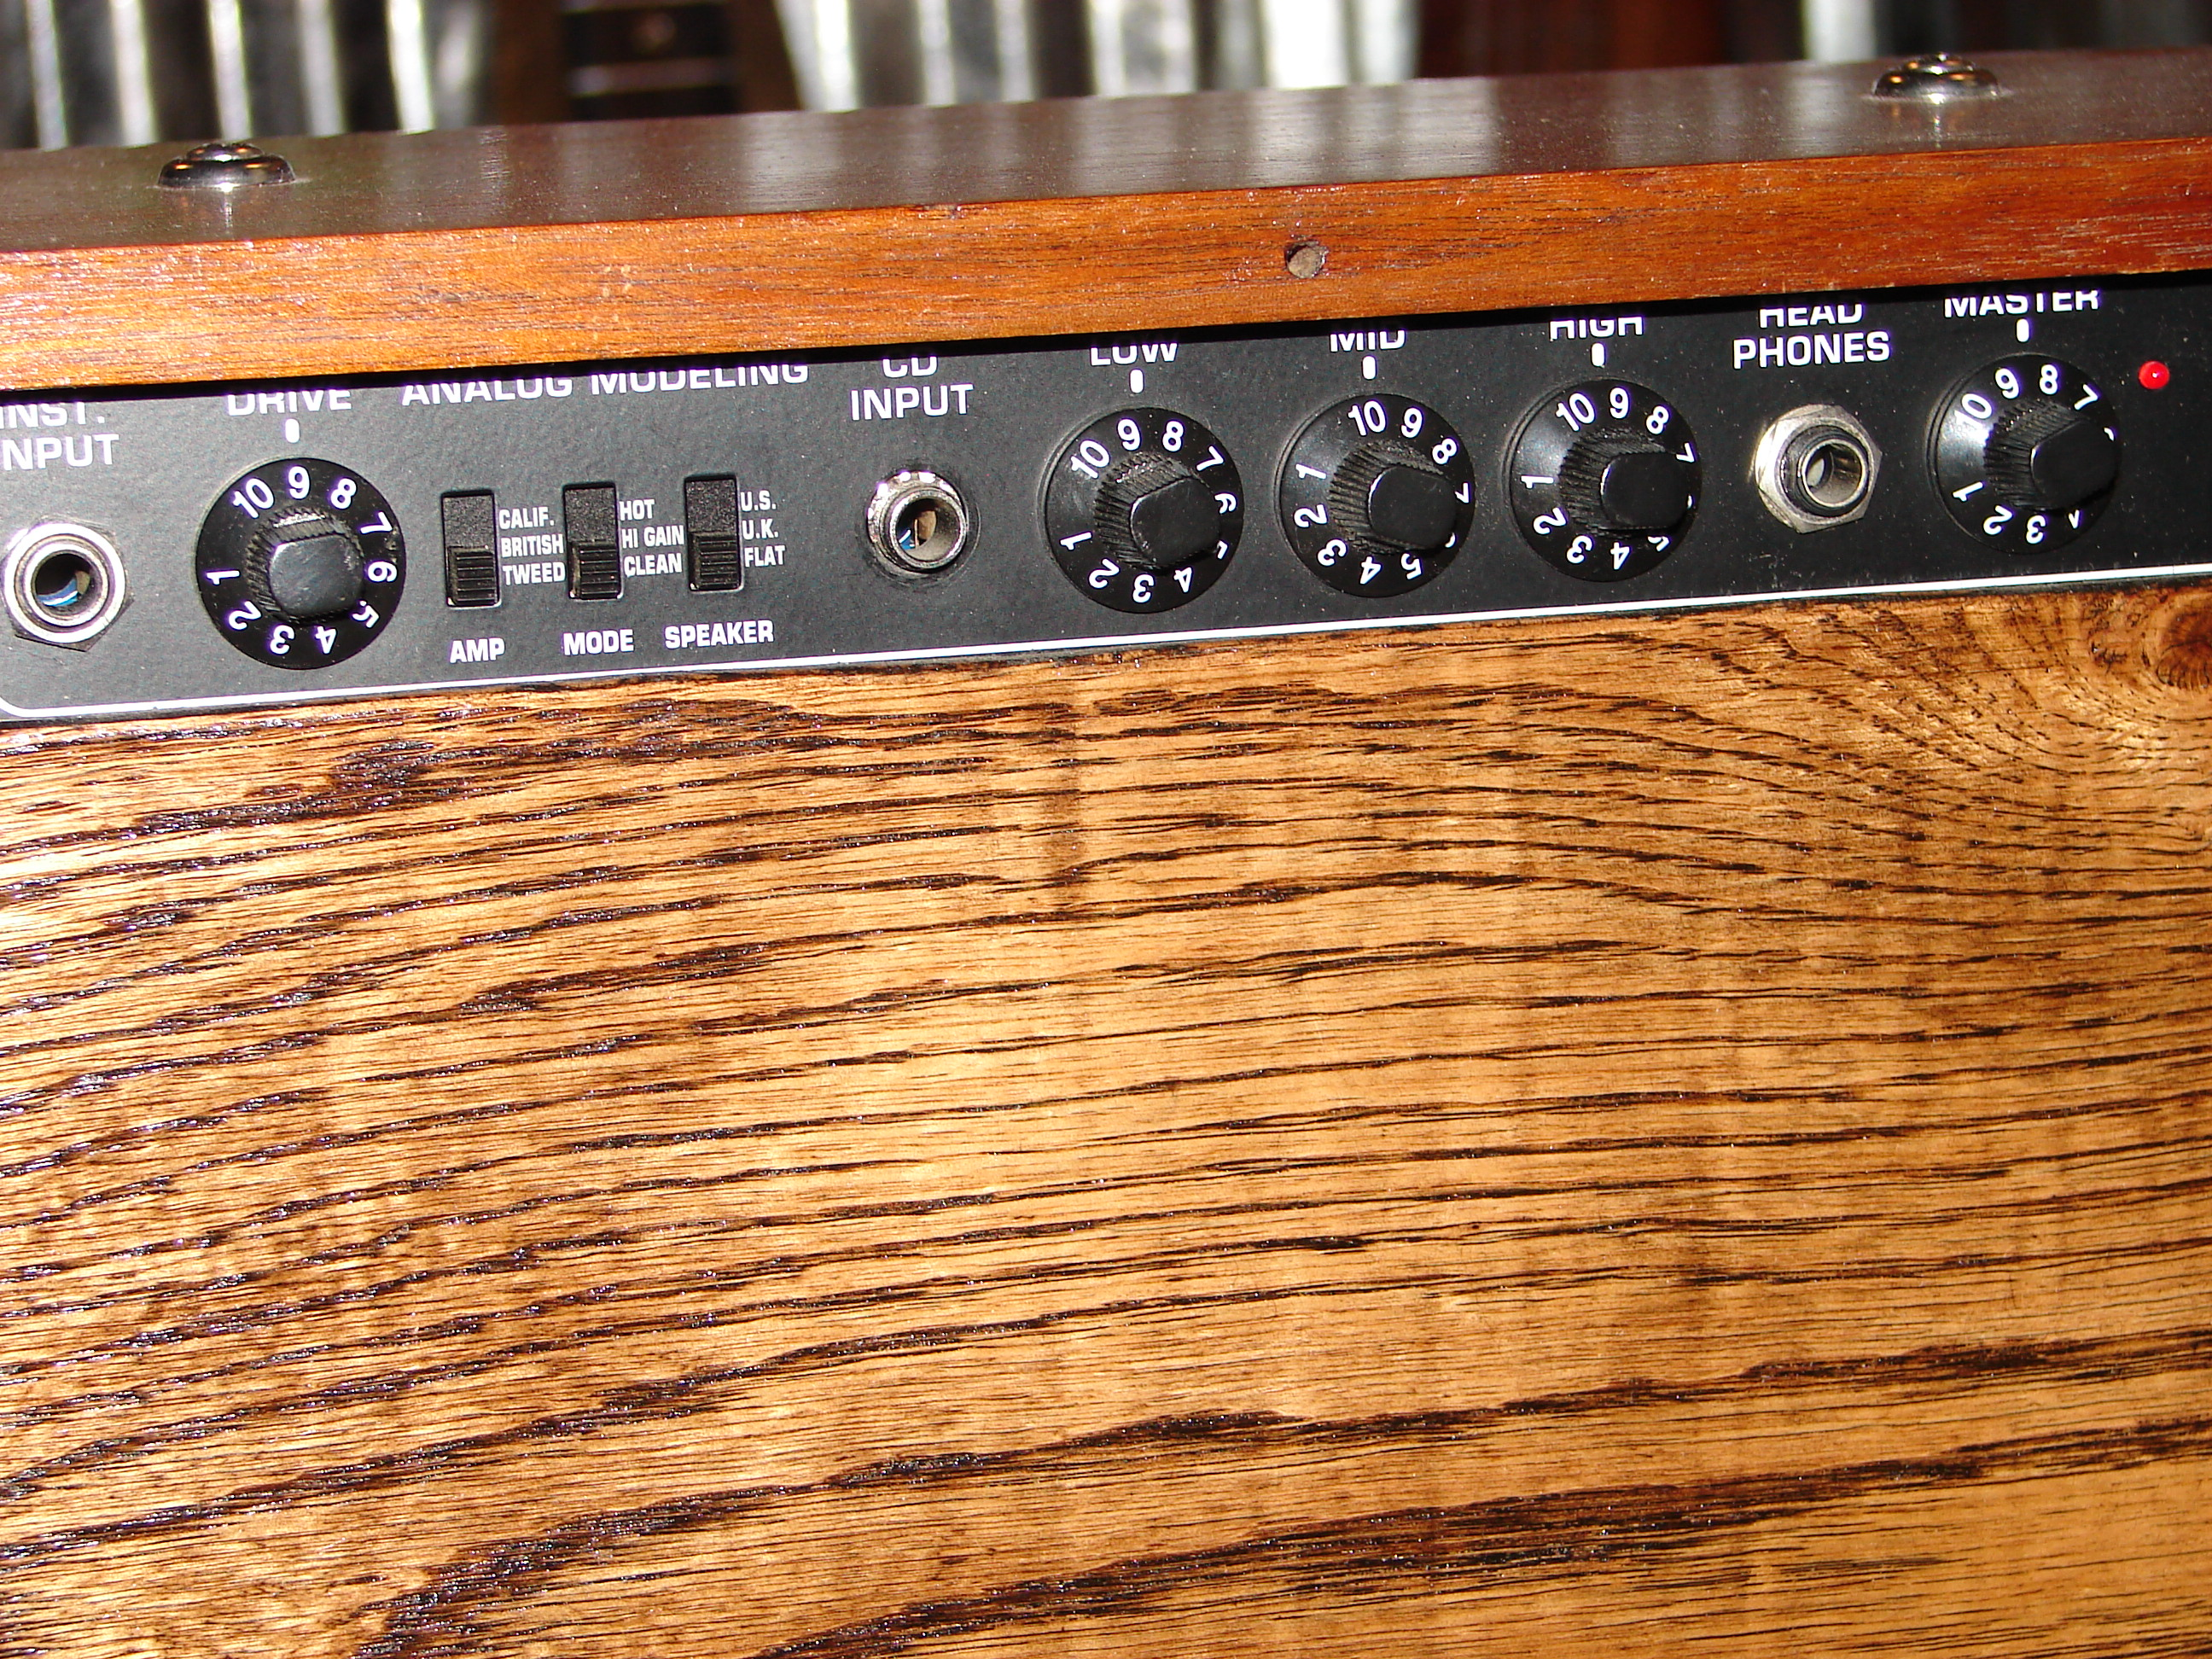 Old radio amp 1